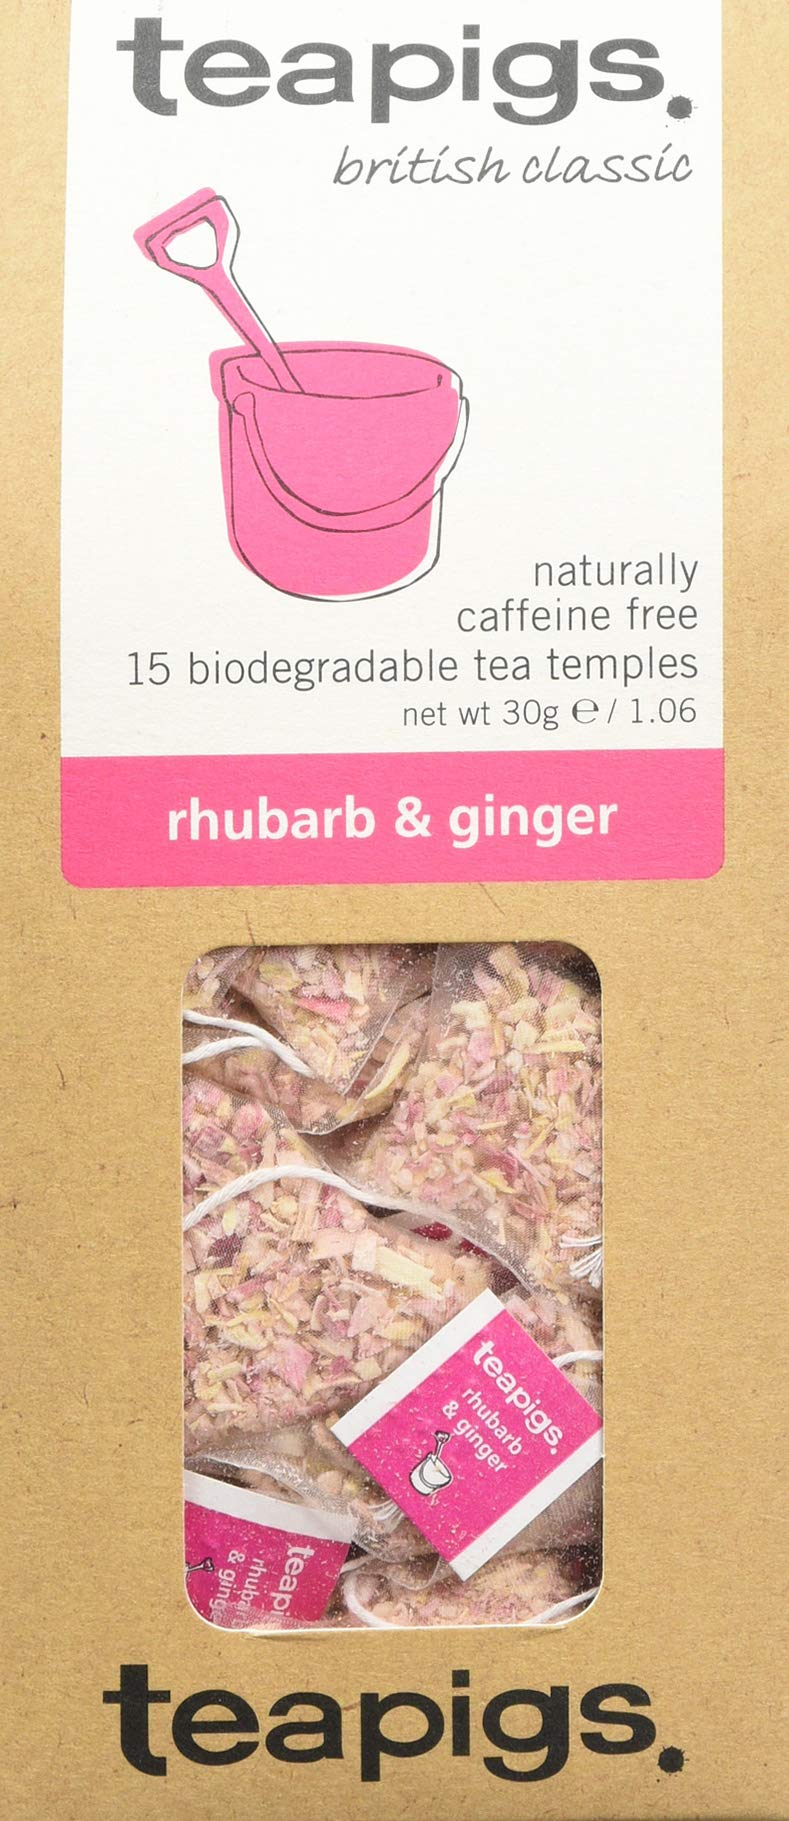 Teapigs rhubarb and ginger tea bundle (infusions) (3 packs of 15 bags) (45 bags) (a spicy, vegetal tea with aromas of ginger, rhubarb) (brews in 3 minutes)